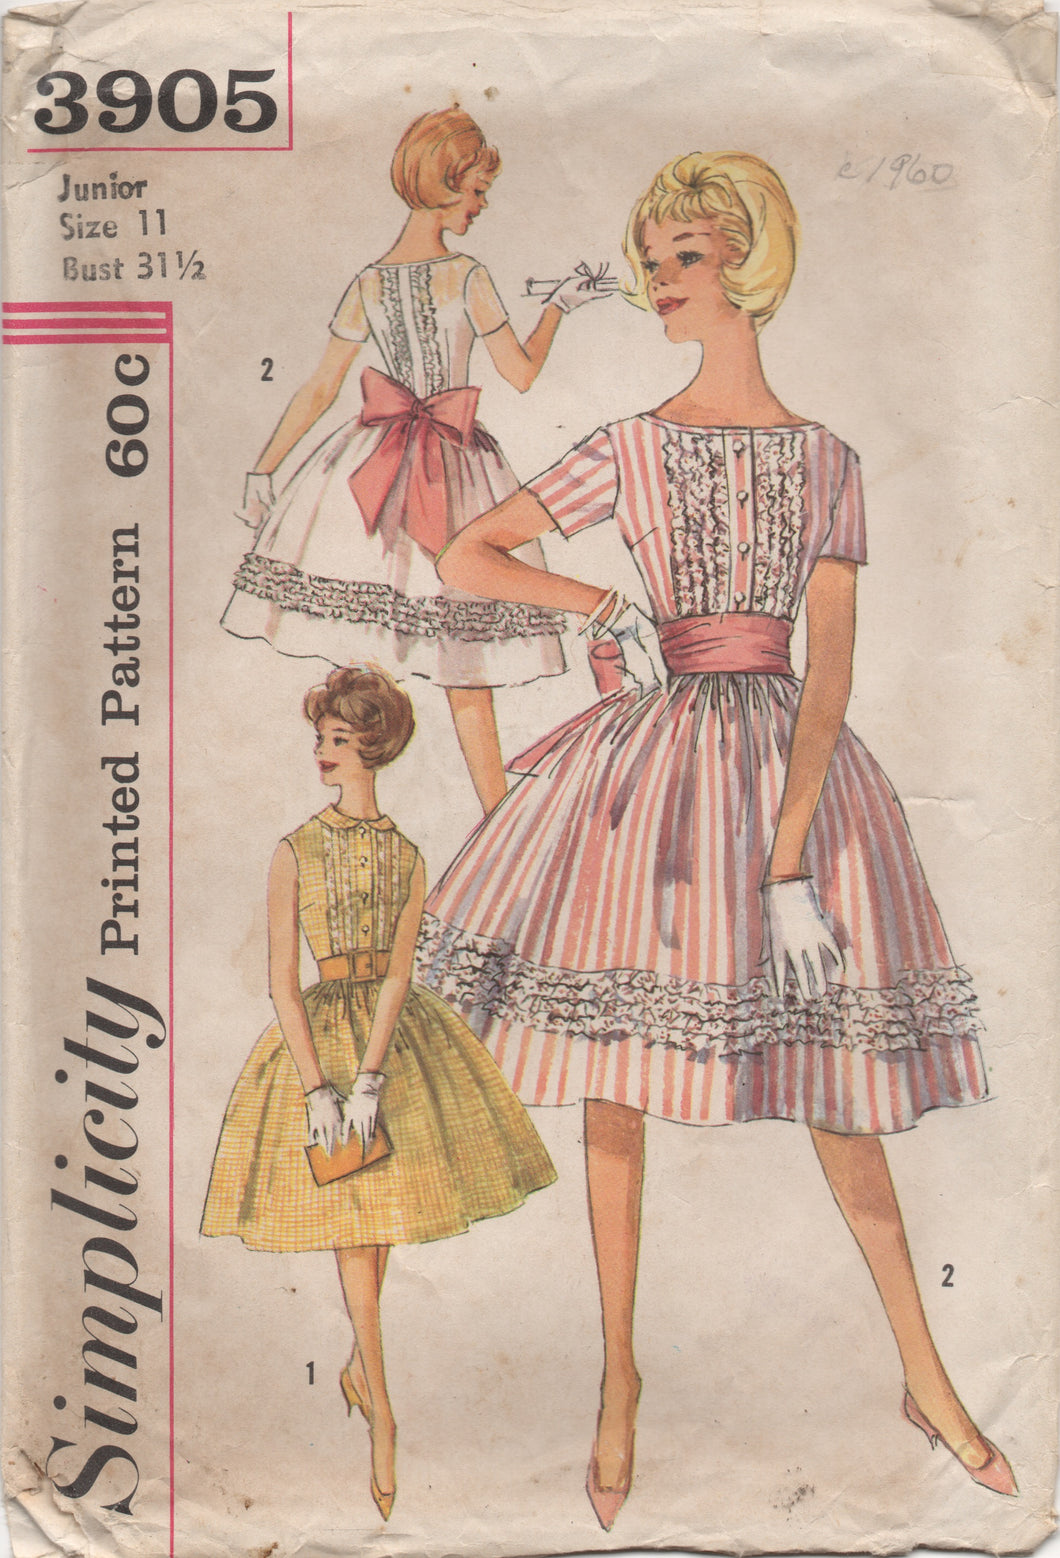 1960's Simplicity One Piece Fit and Flare Dress with Large Bow Pattern - Bust 31.5